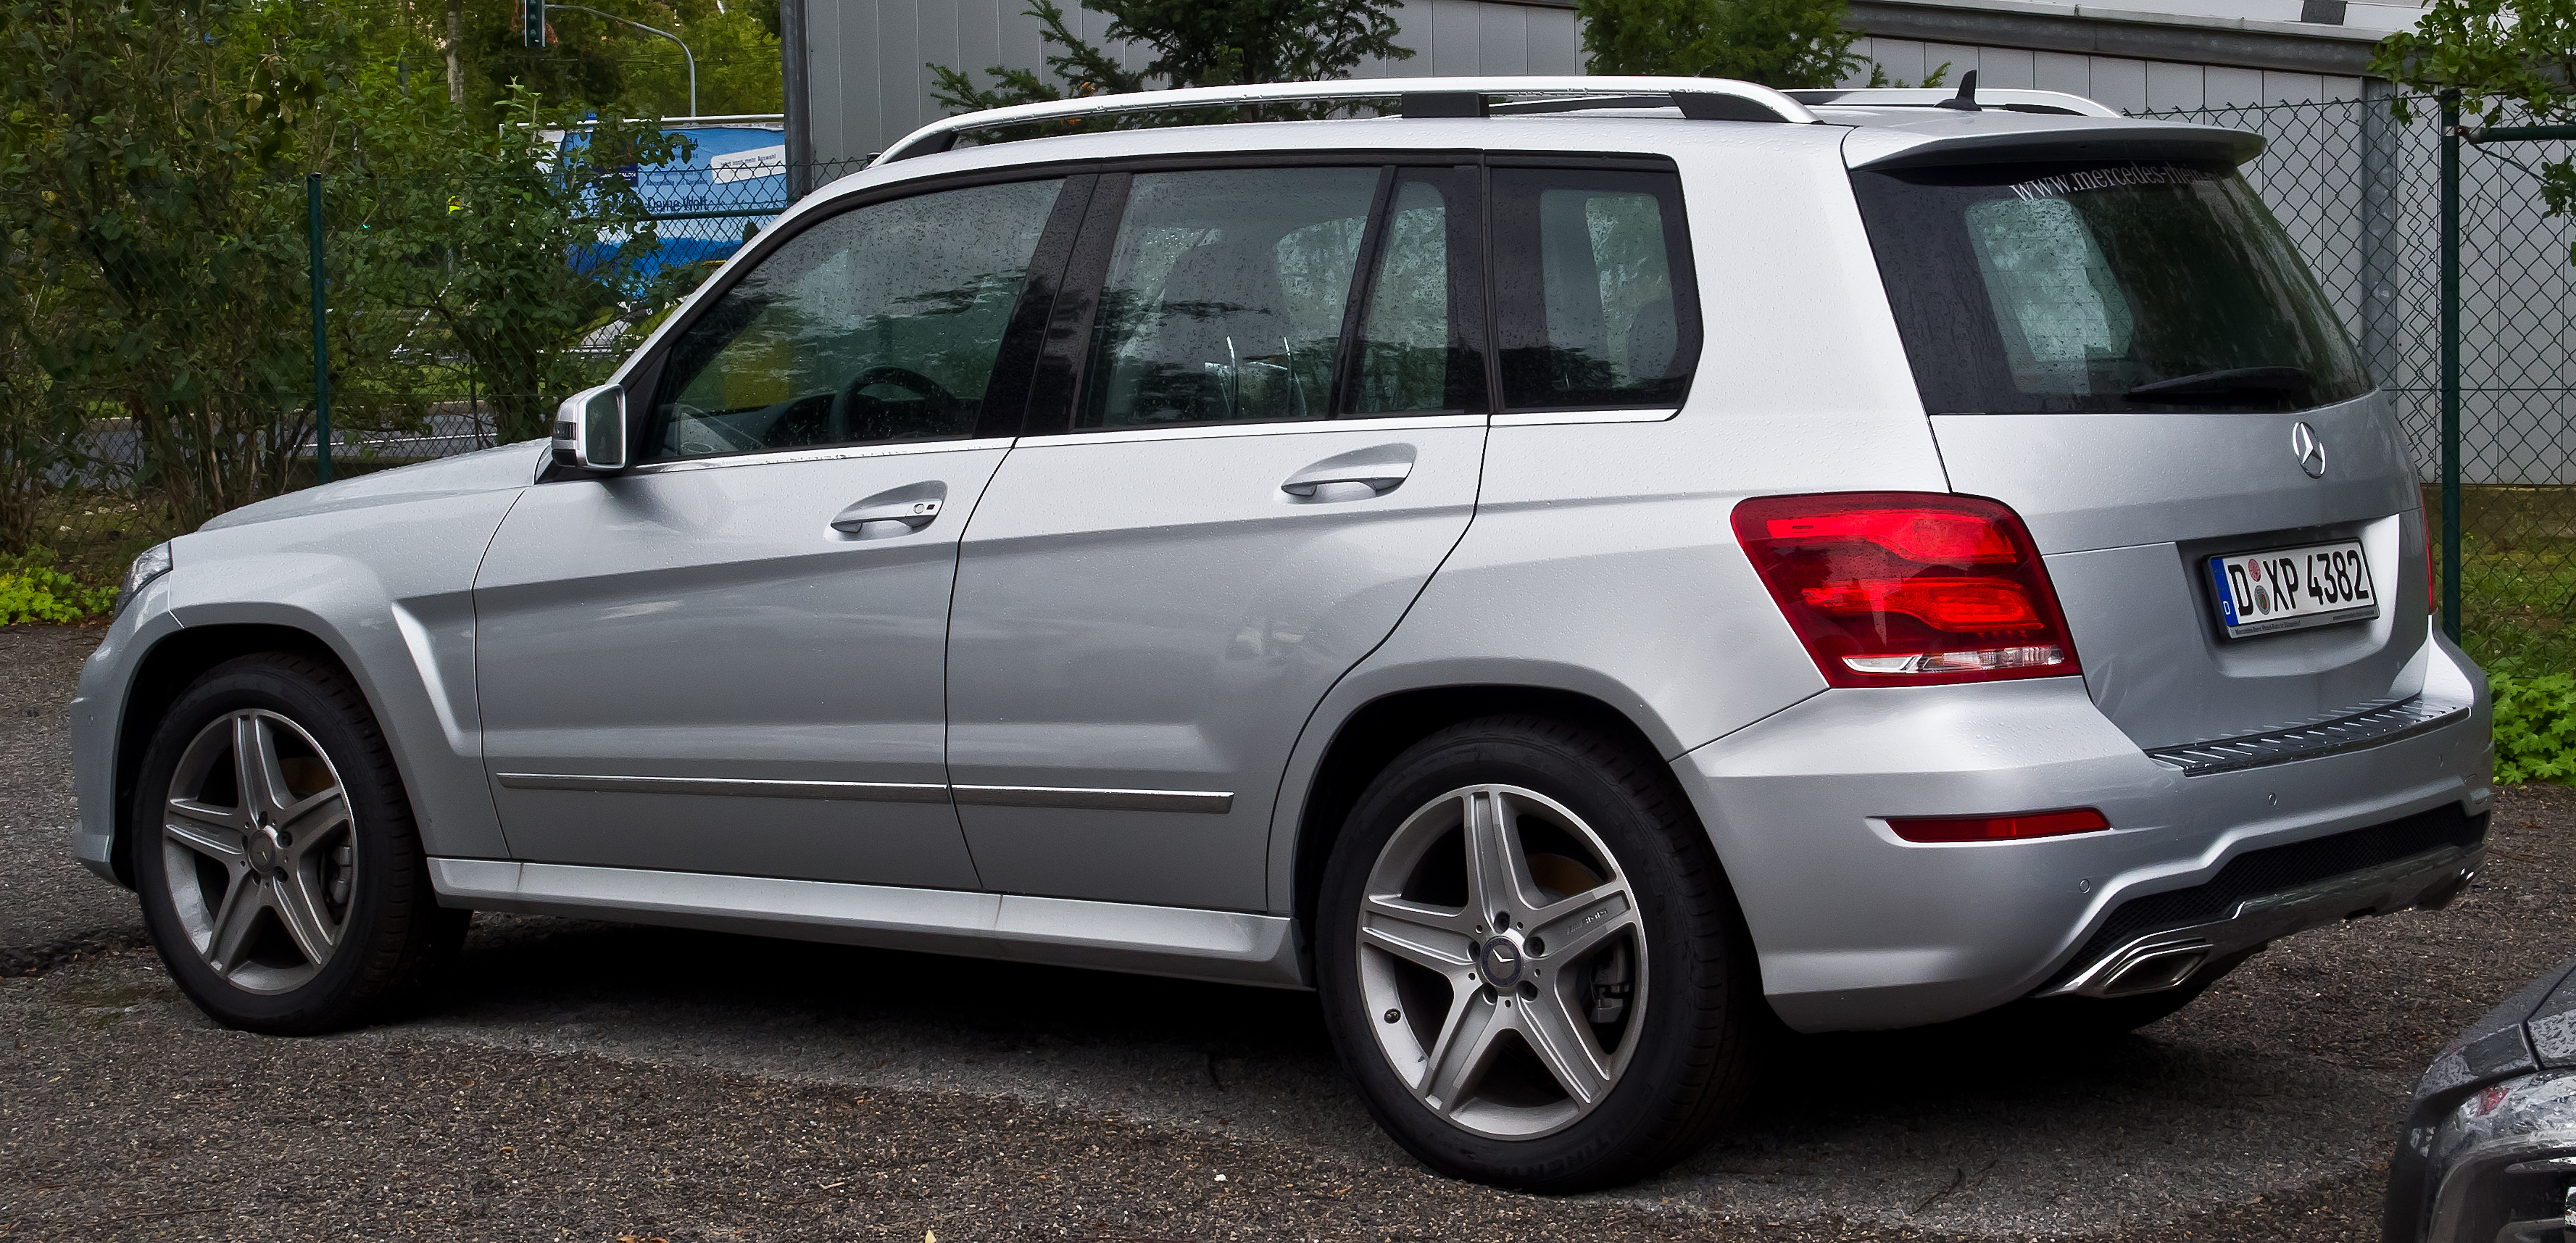 File mercedes benz glk 220 cdi 4matic sport paket amg x for Mercedes benz glk350 amg